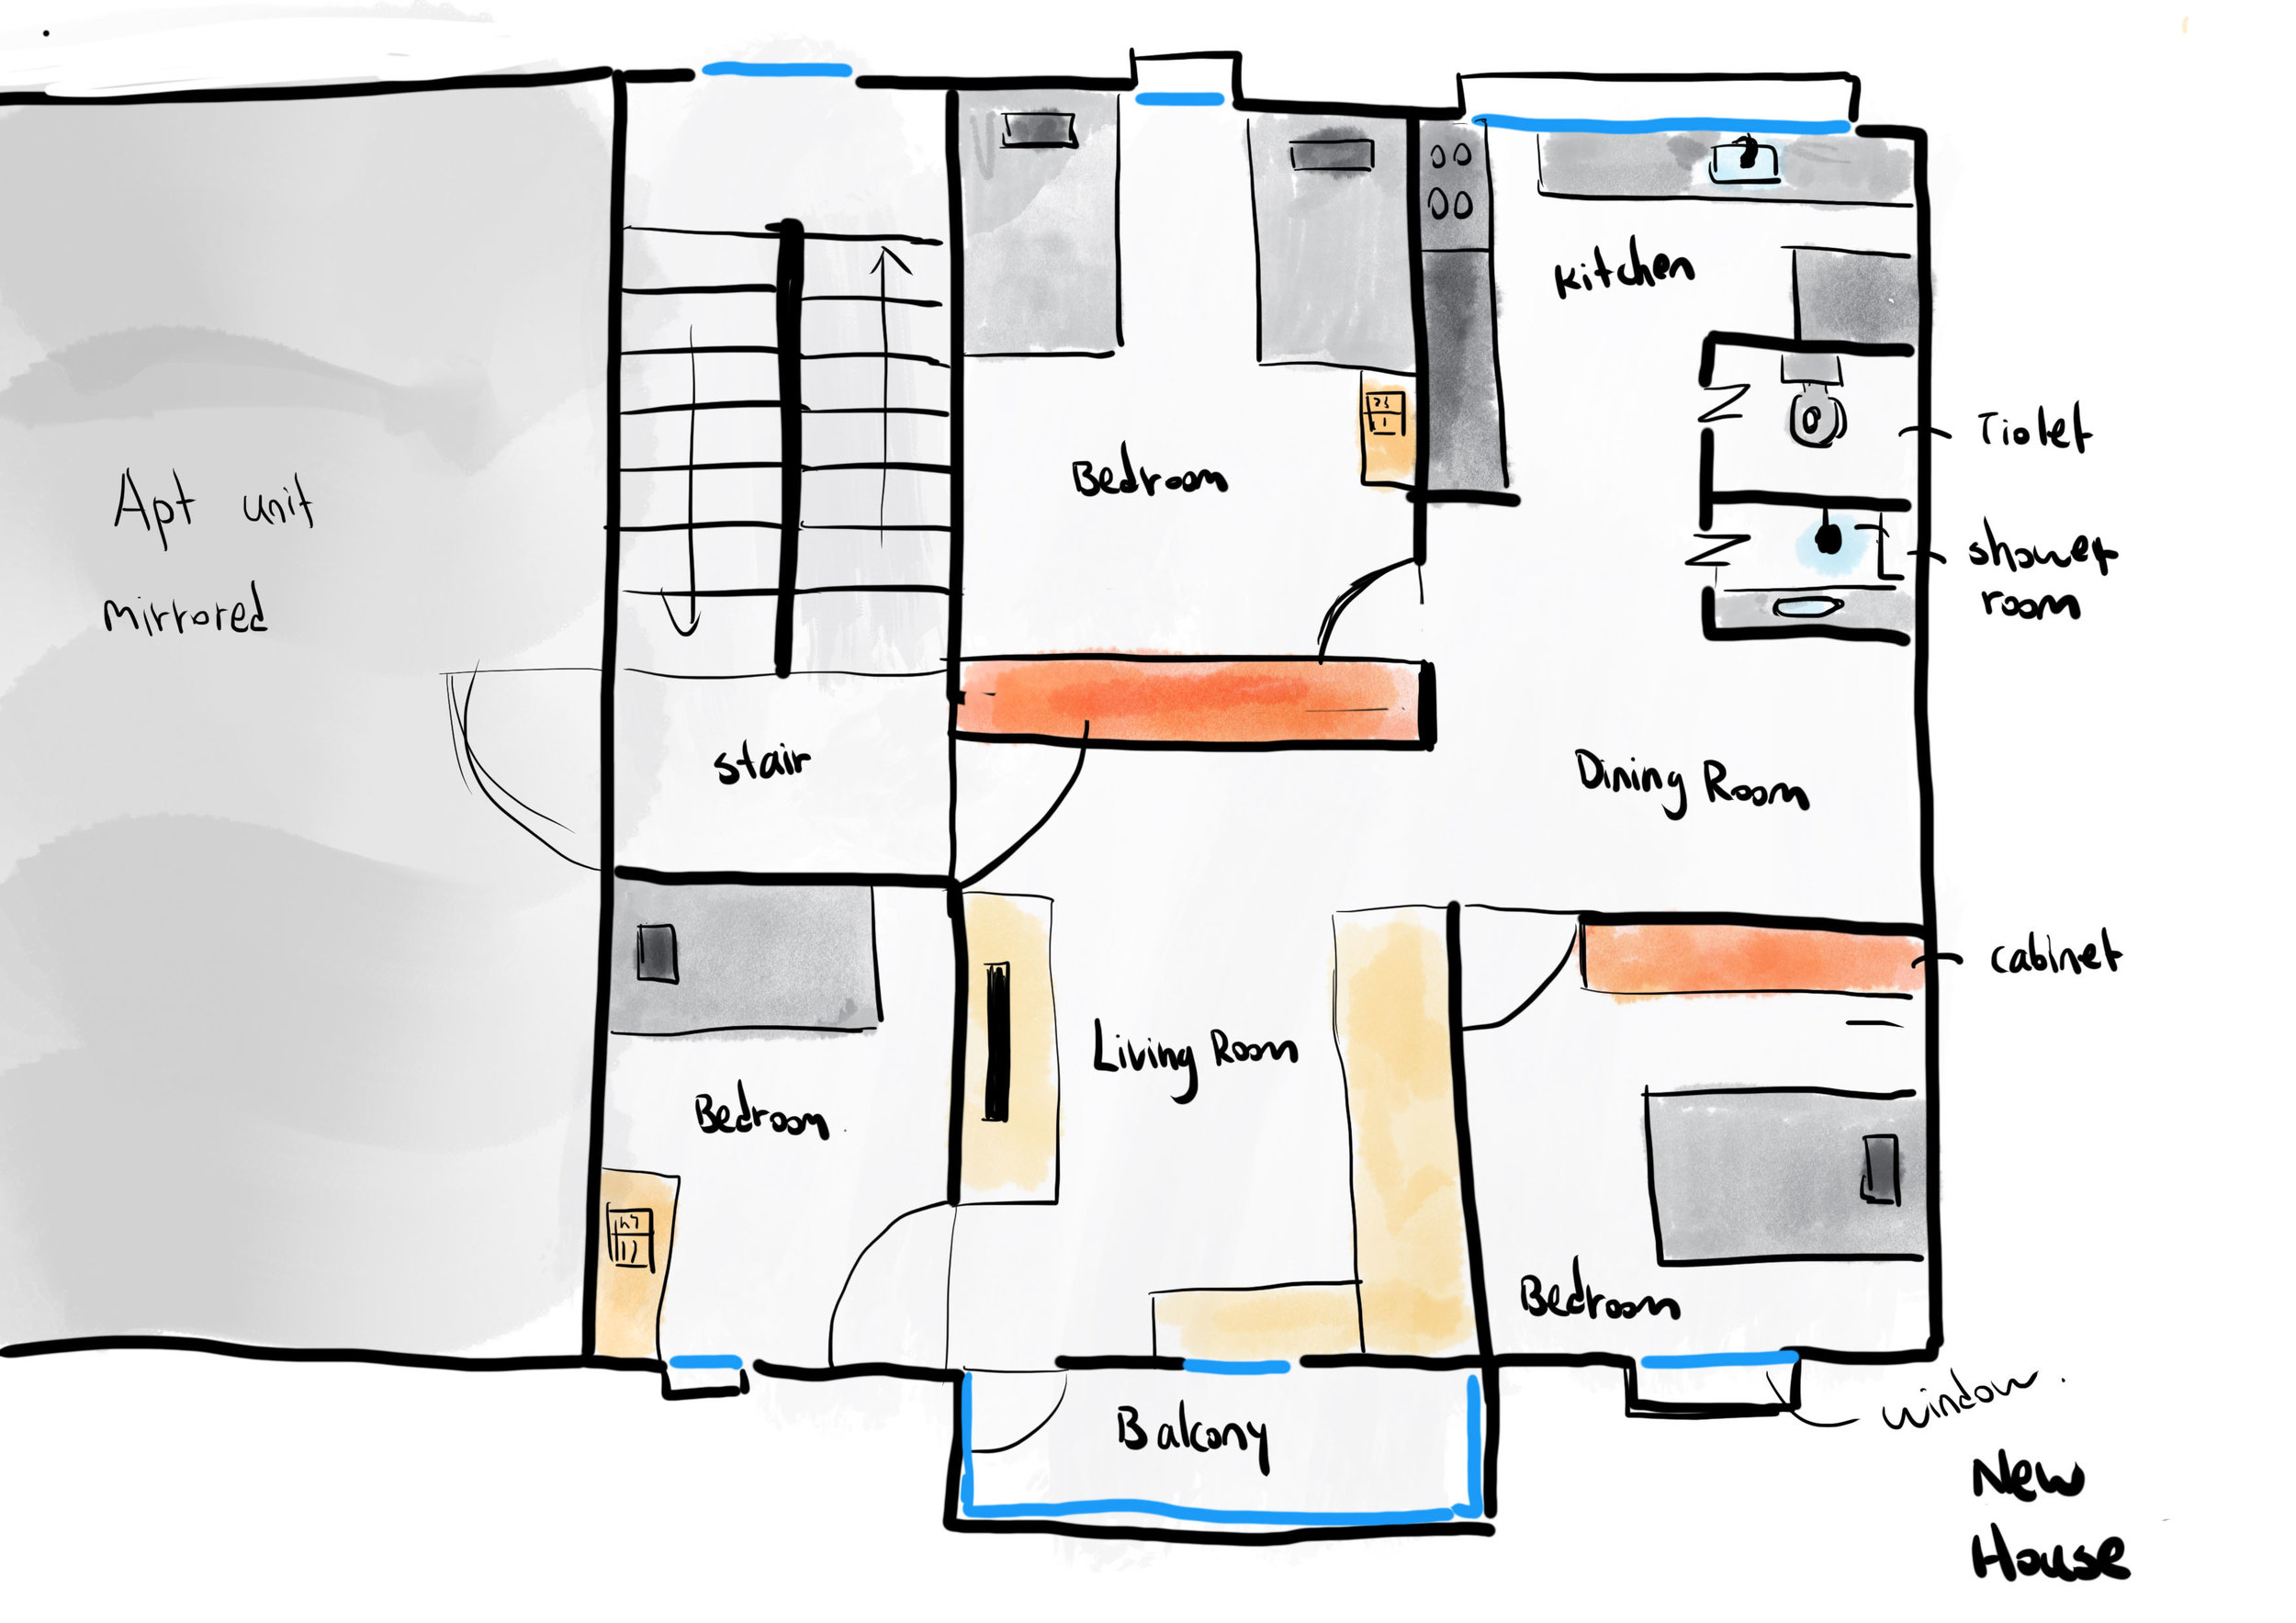 Figure 2. Plan of the new house. Drawn by JiaJun Liu, 2019.